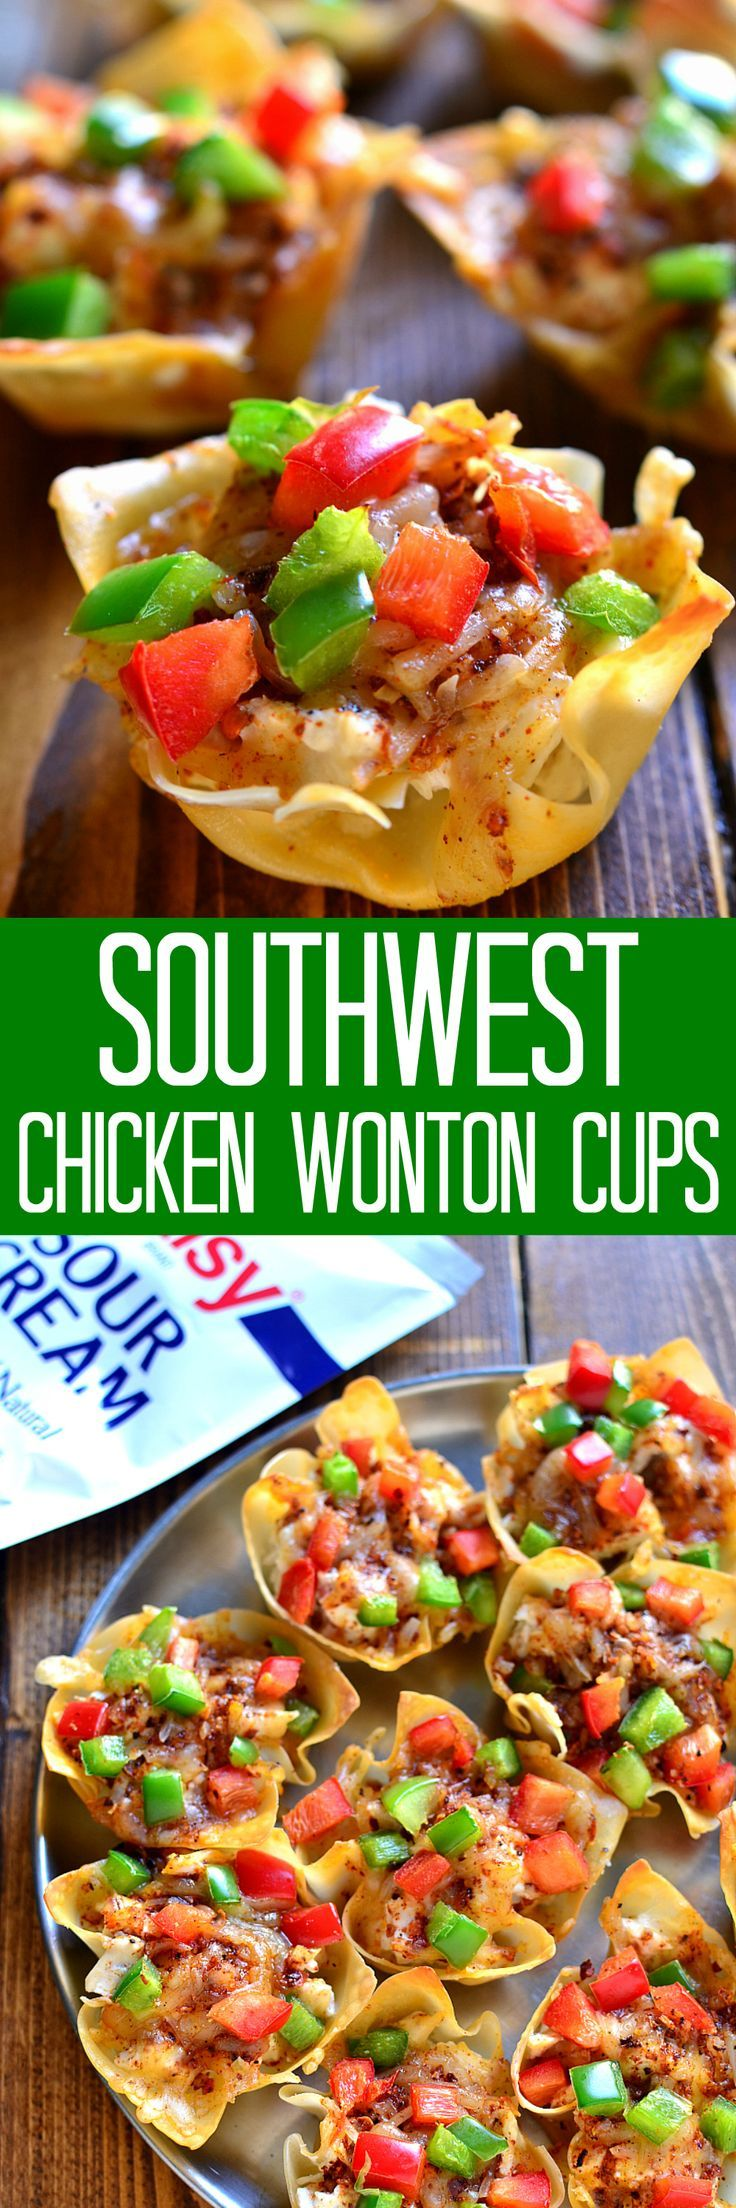 Southwest Chicken Wonton Cups are loaded with creamy chicken, cheese, and peppers and packed with delicious southwest flavor. The perfect holiday appetizer - sure to become a new family favorite! #dollopofdaisy #ad #sk